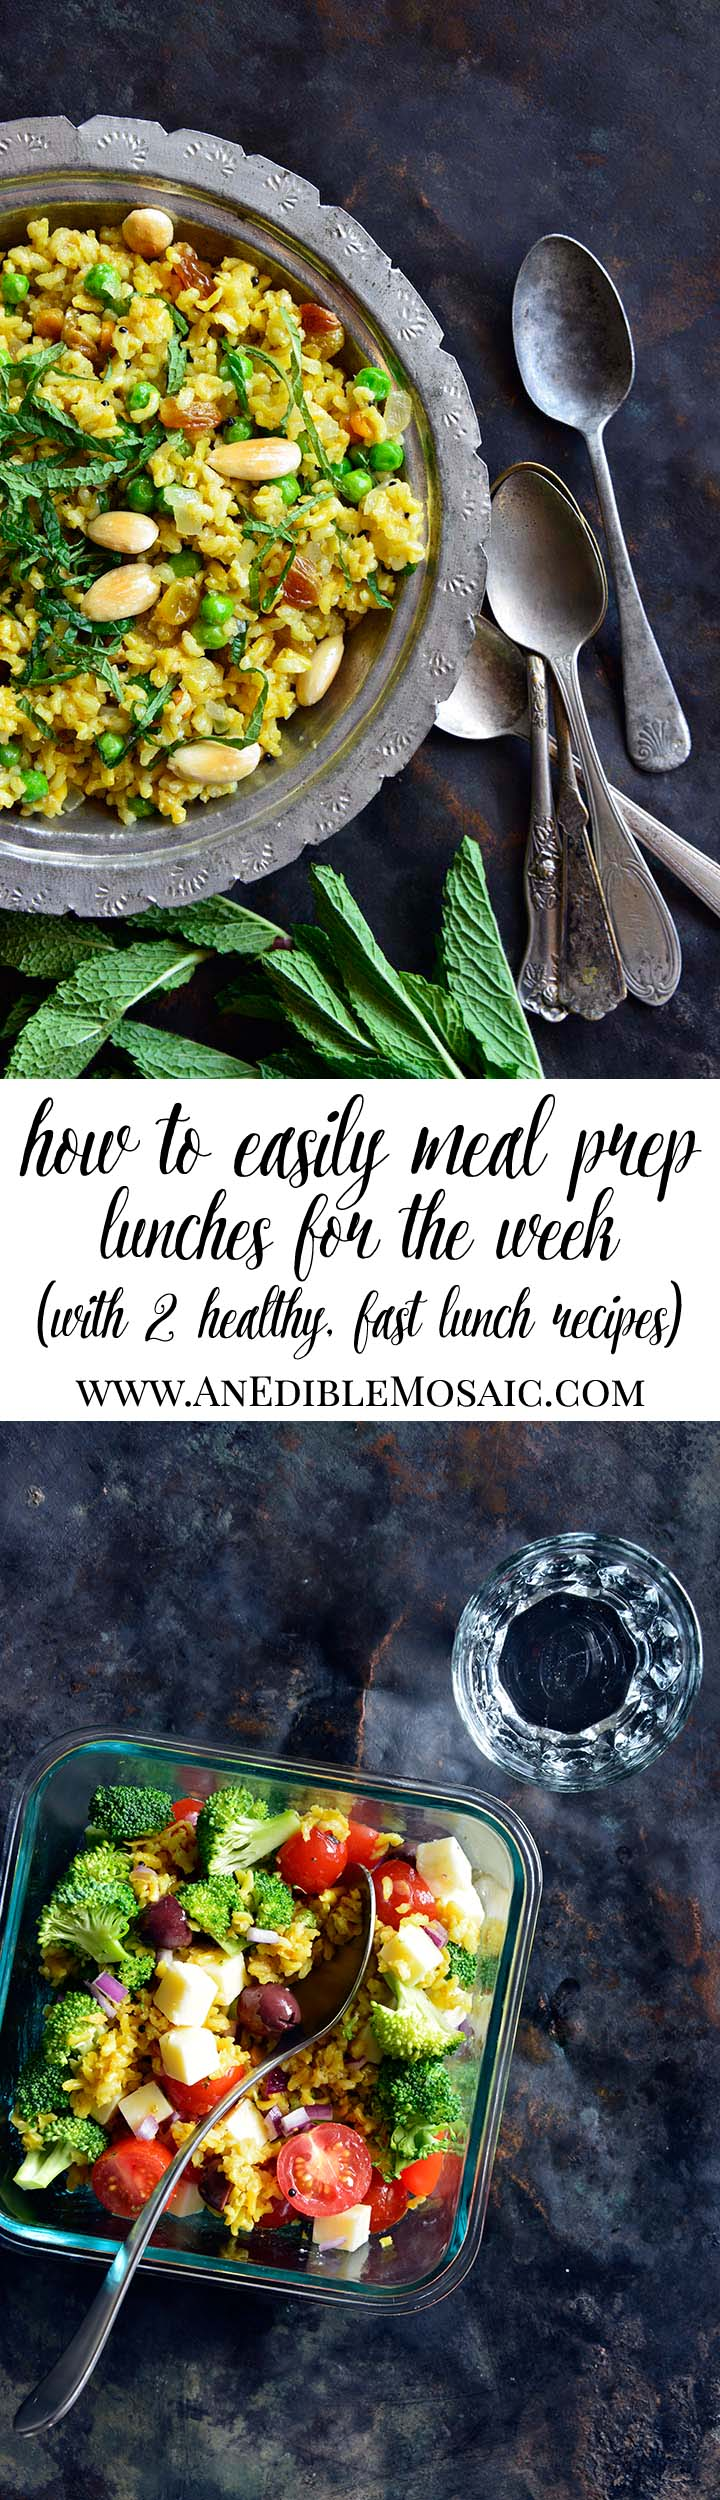 How to Easily Meal Prep Healthy Lunches for the Week